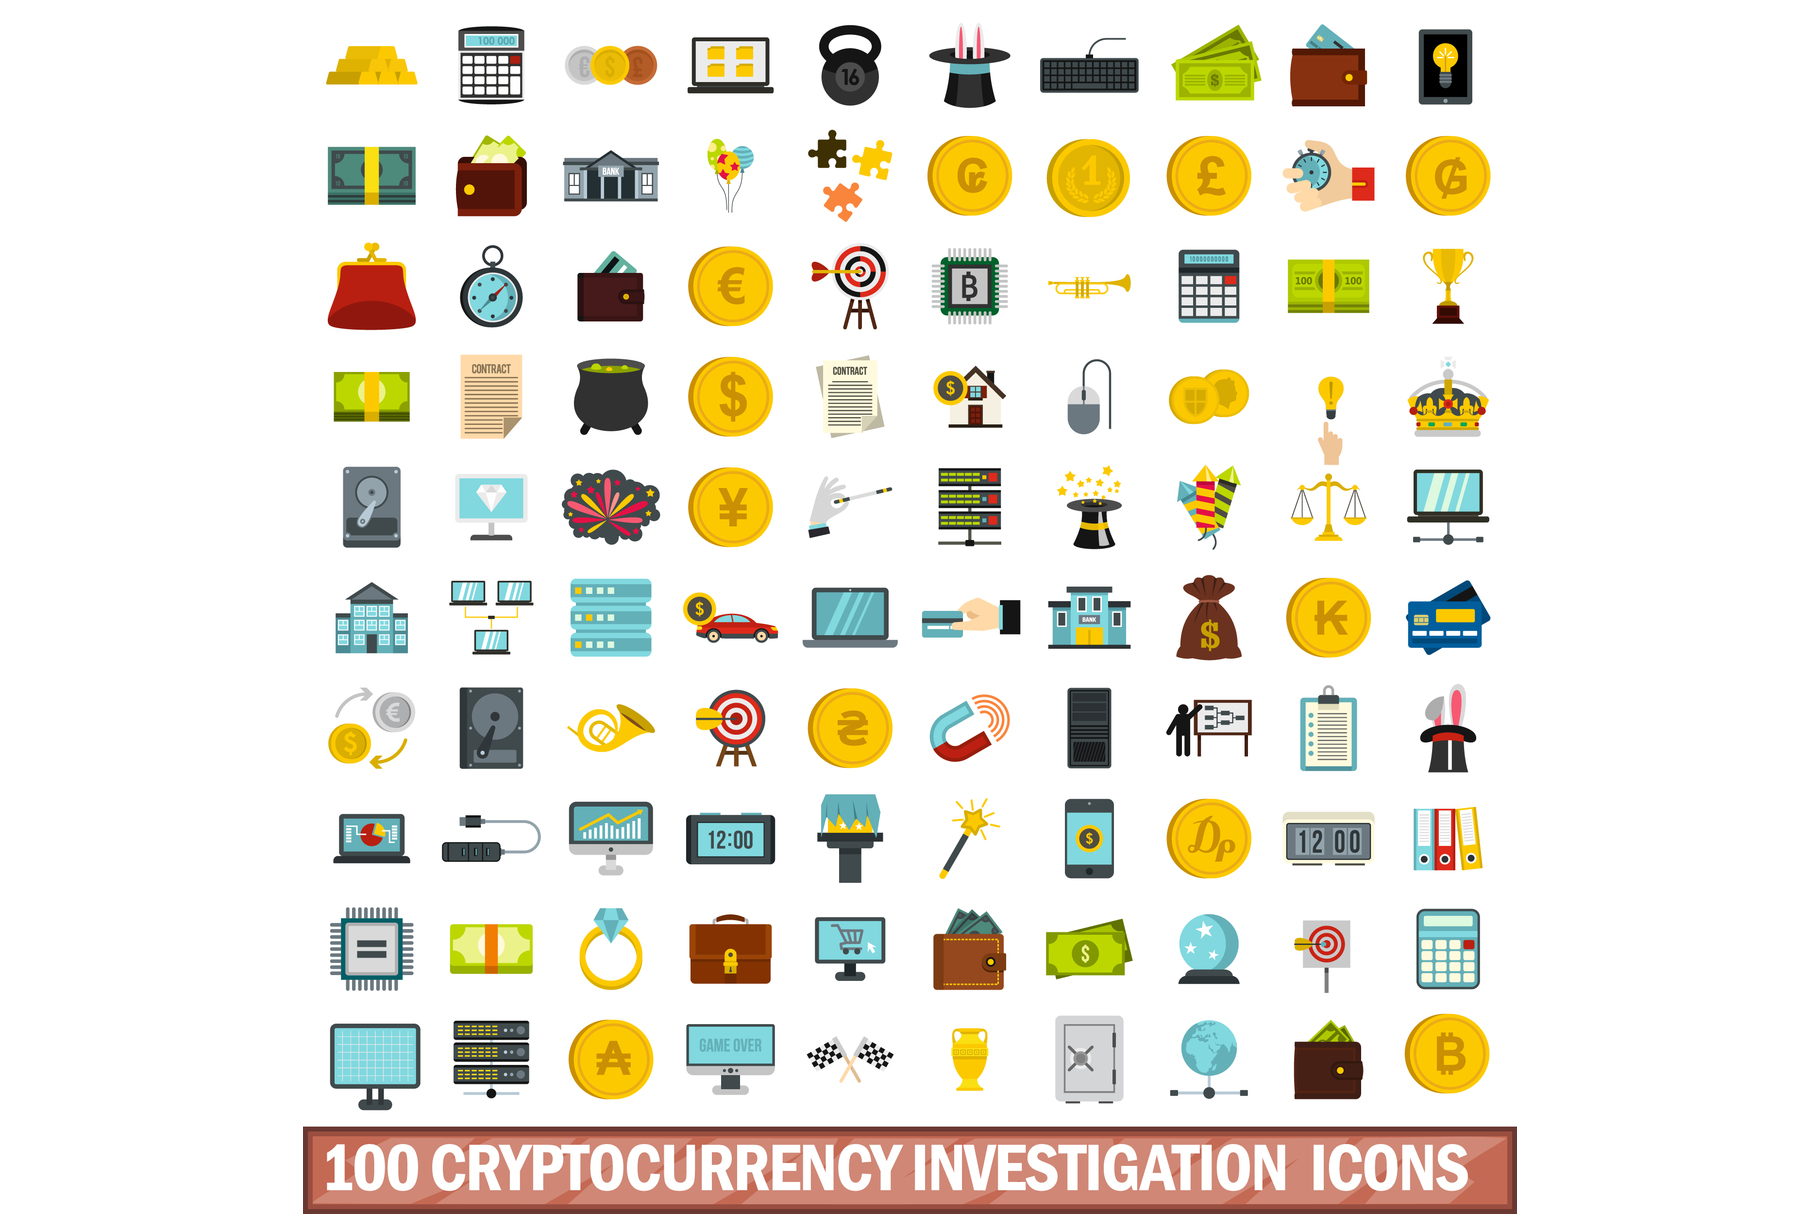 100 cryptocurrency investigation icons set example image 1